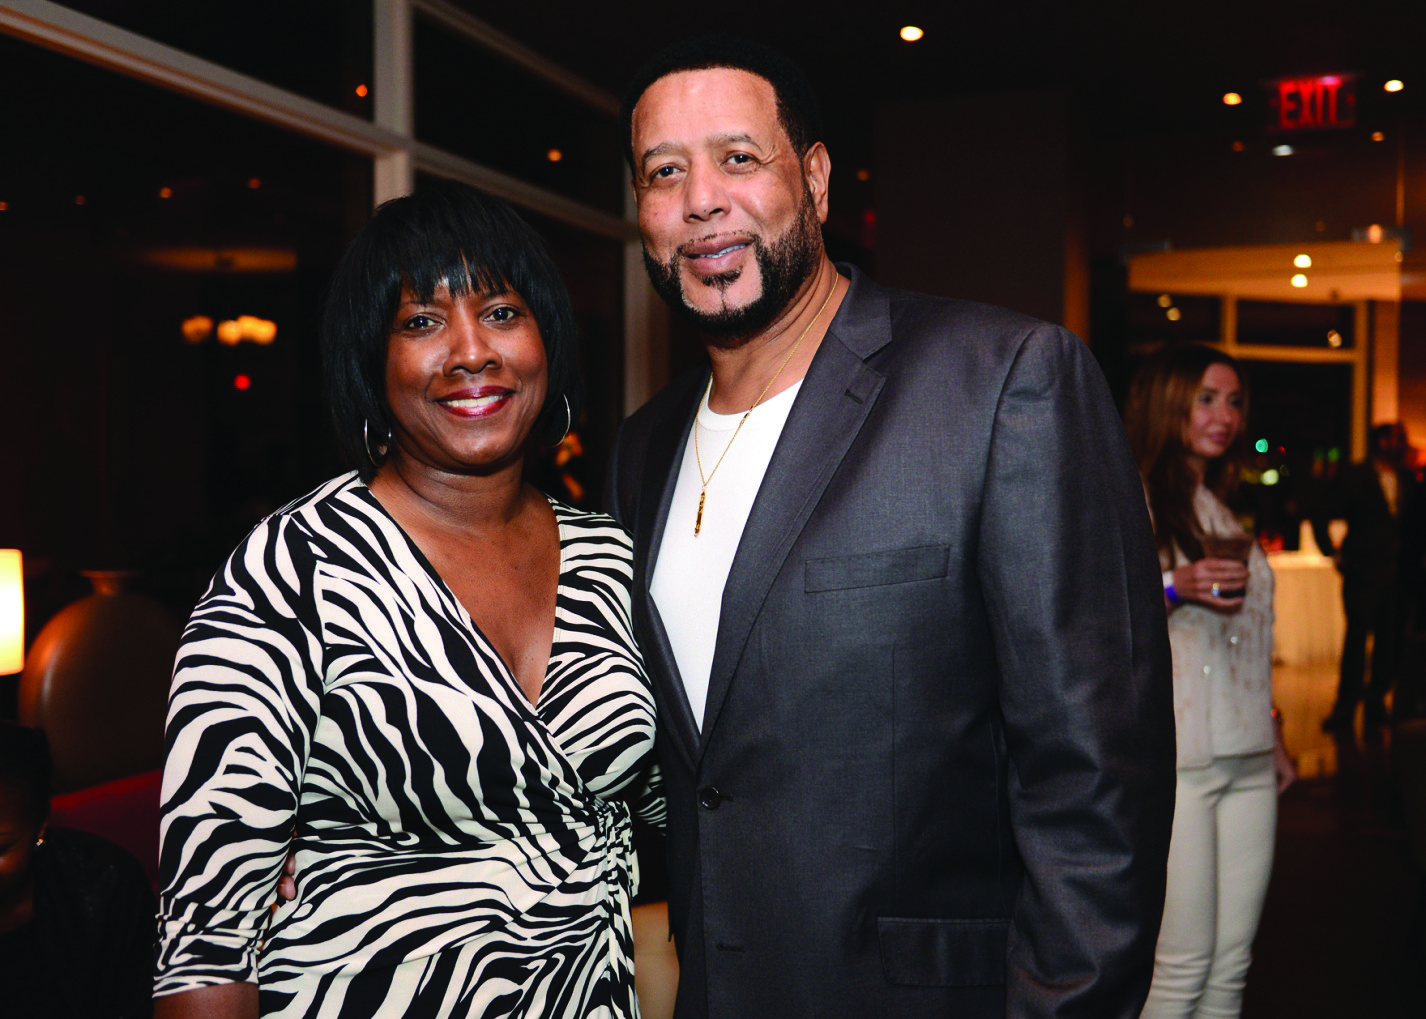 Celeb-spotting around South Florida - Former Miami Heat player Alonzo Mourning recently hosted a VIP dinner and cocktail party at Beauty & The Feast Bar|Kitchen in The Atlantic Hotel & Spa in Fort Lauderdale. Almarie Chalmers, left, and Ronnie Chalmers were among the more than 100 guests who came out to show their support.